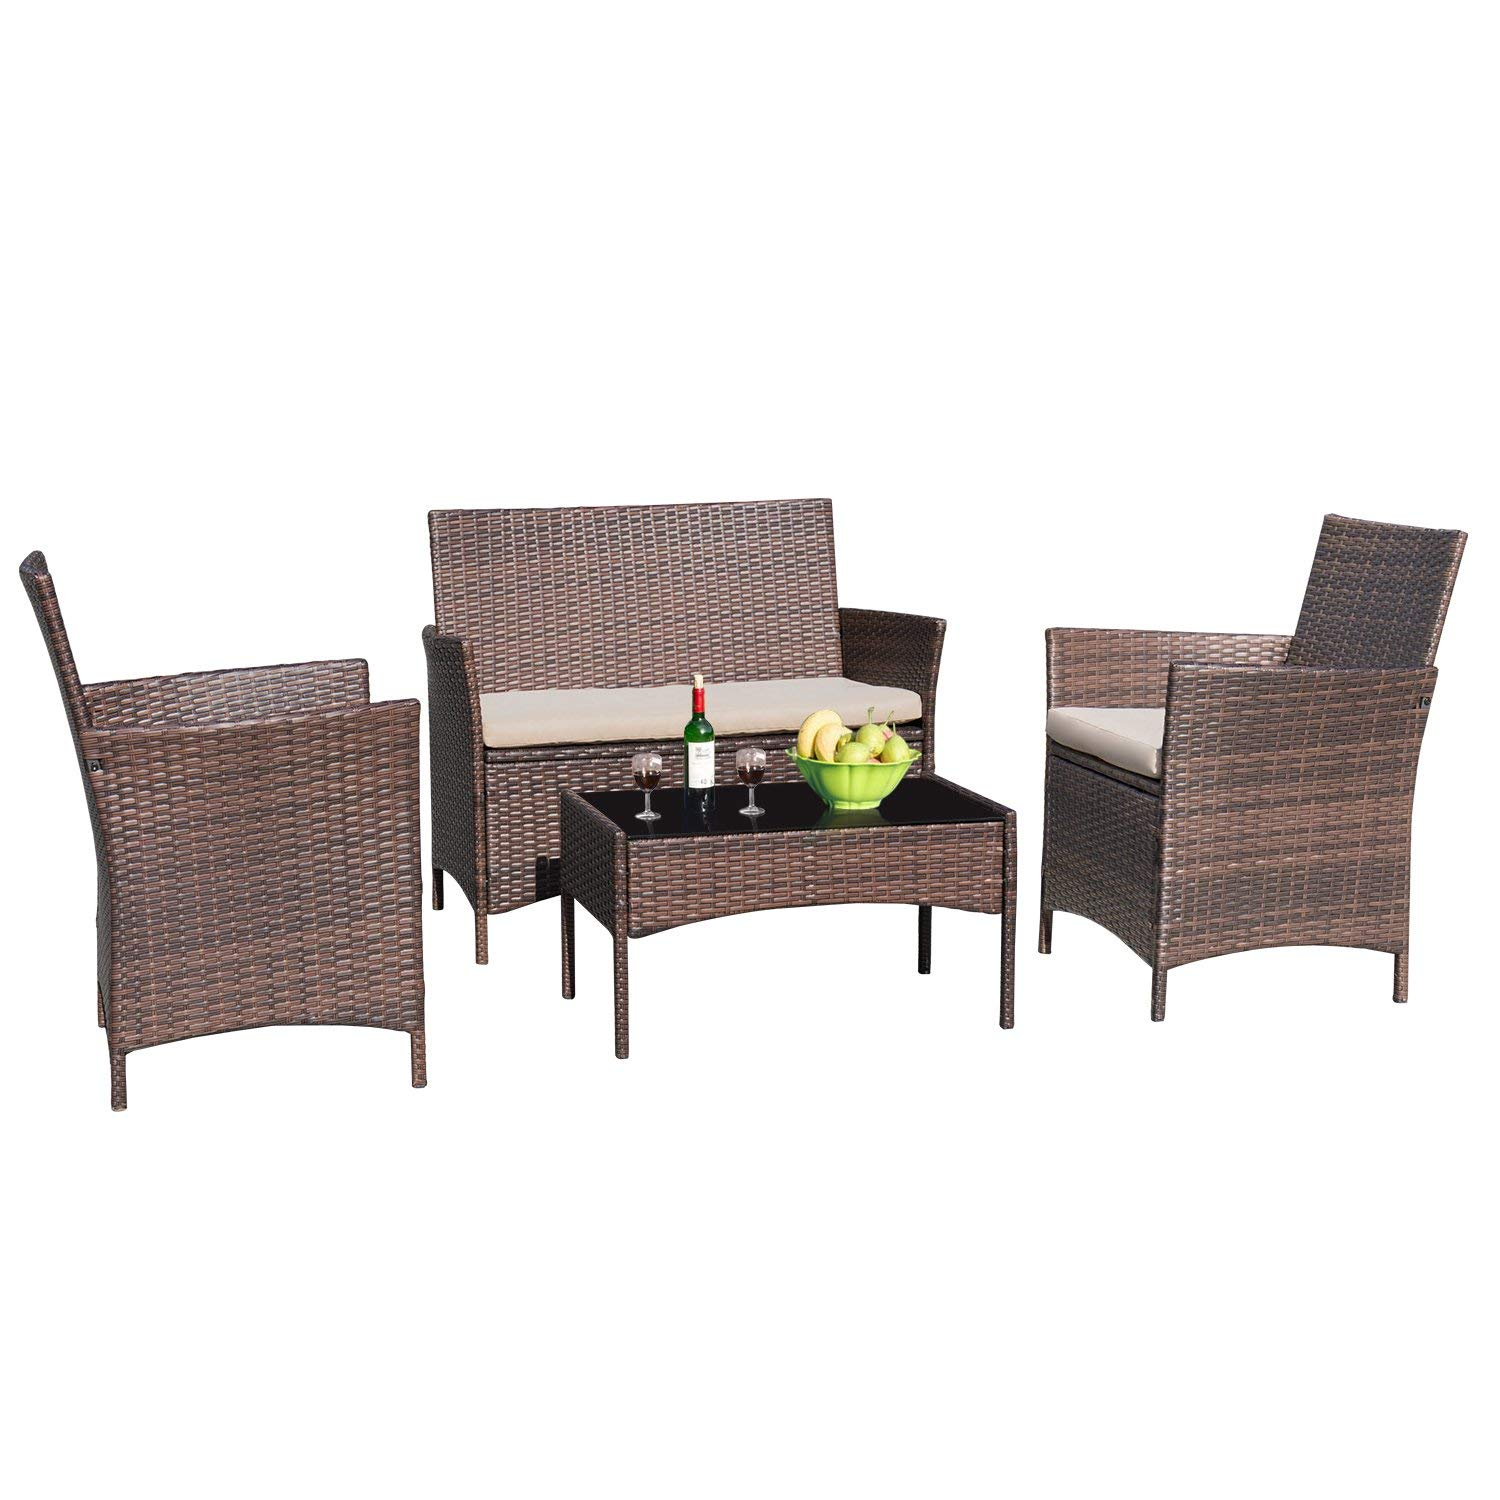 Walnew 4 Pcs Outdoor Patio Furniture Black Pe Rattan Wicker Table And Chairs Set Bar Balcony Backyard Garden Porch Sets With Cushioned Tempered Glass Beige Walmart Com Walmart Com